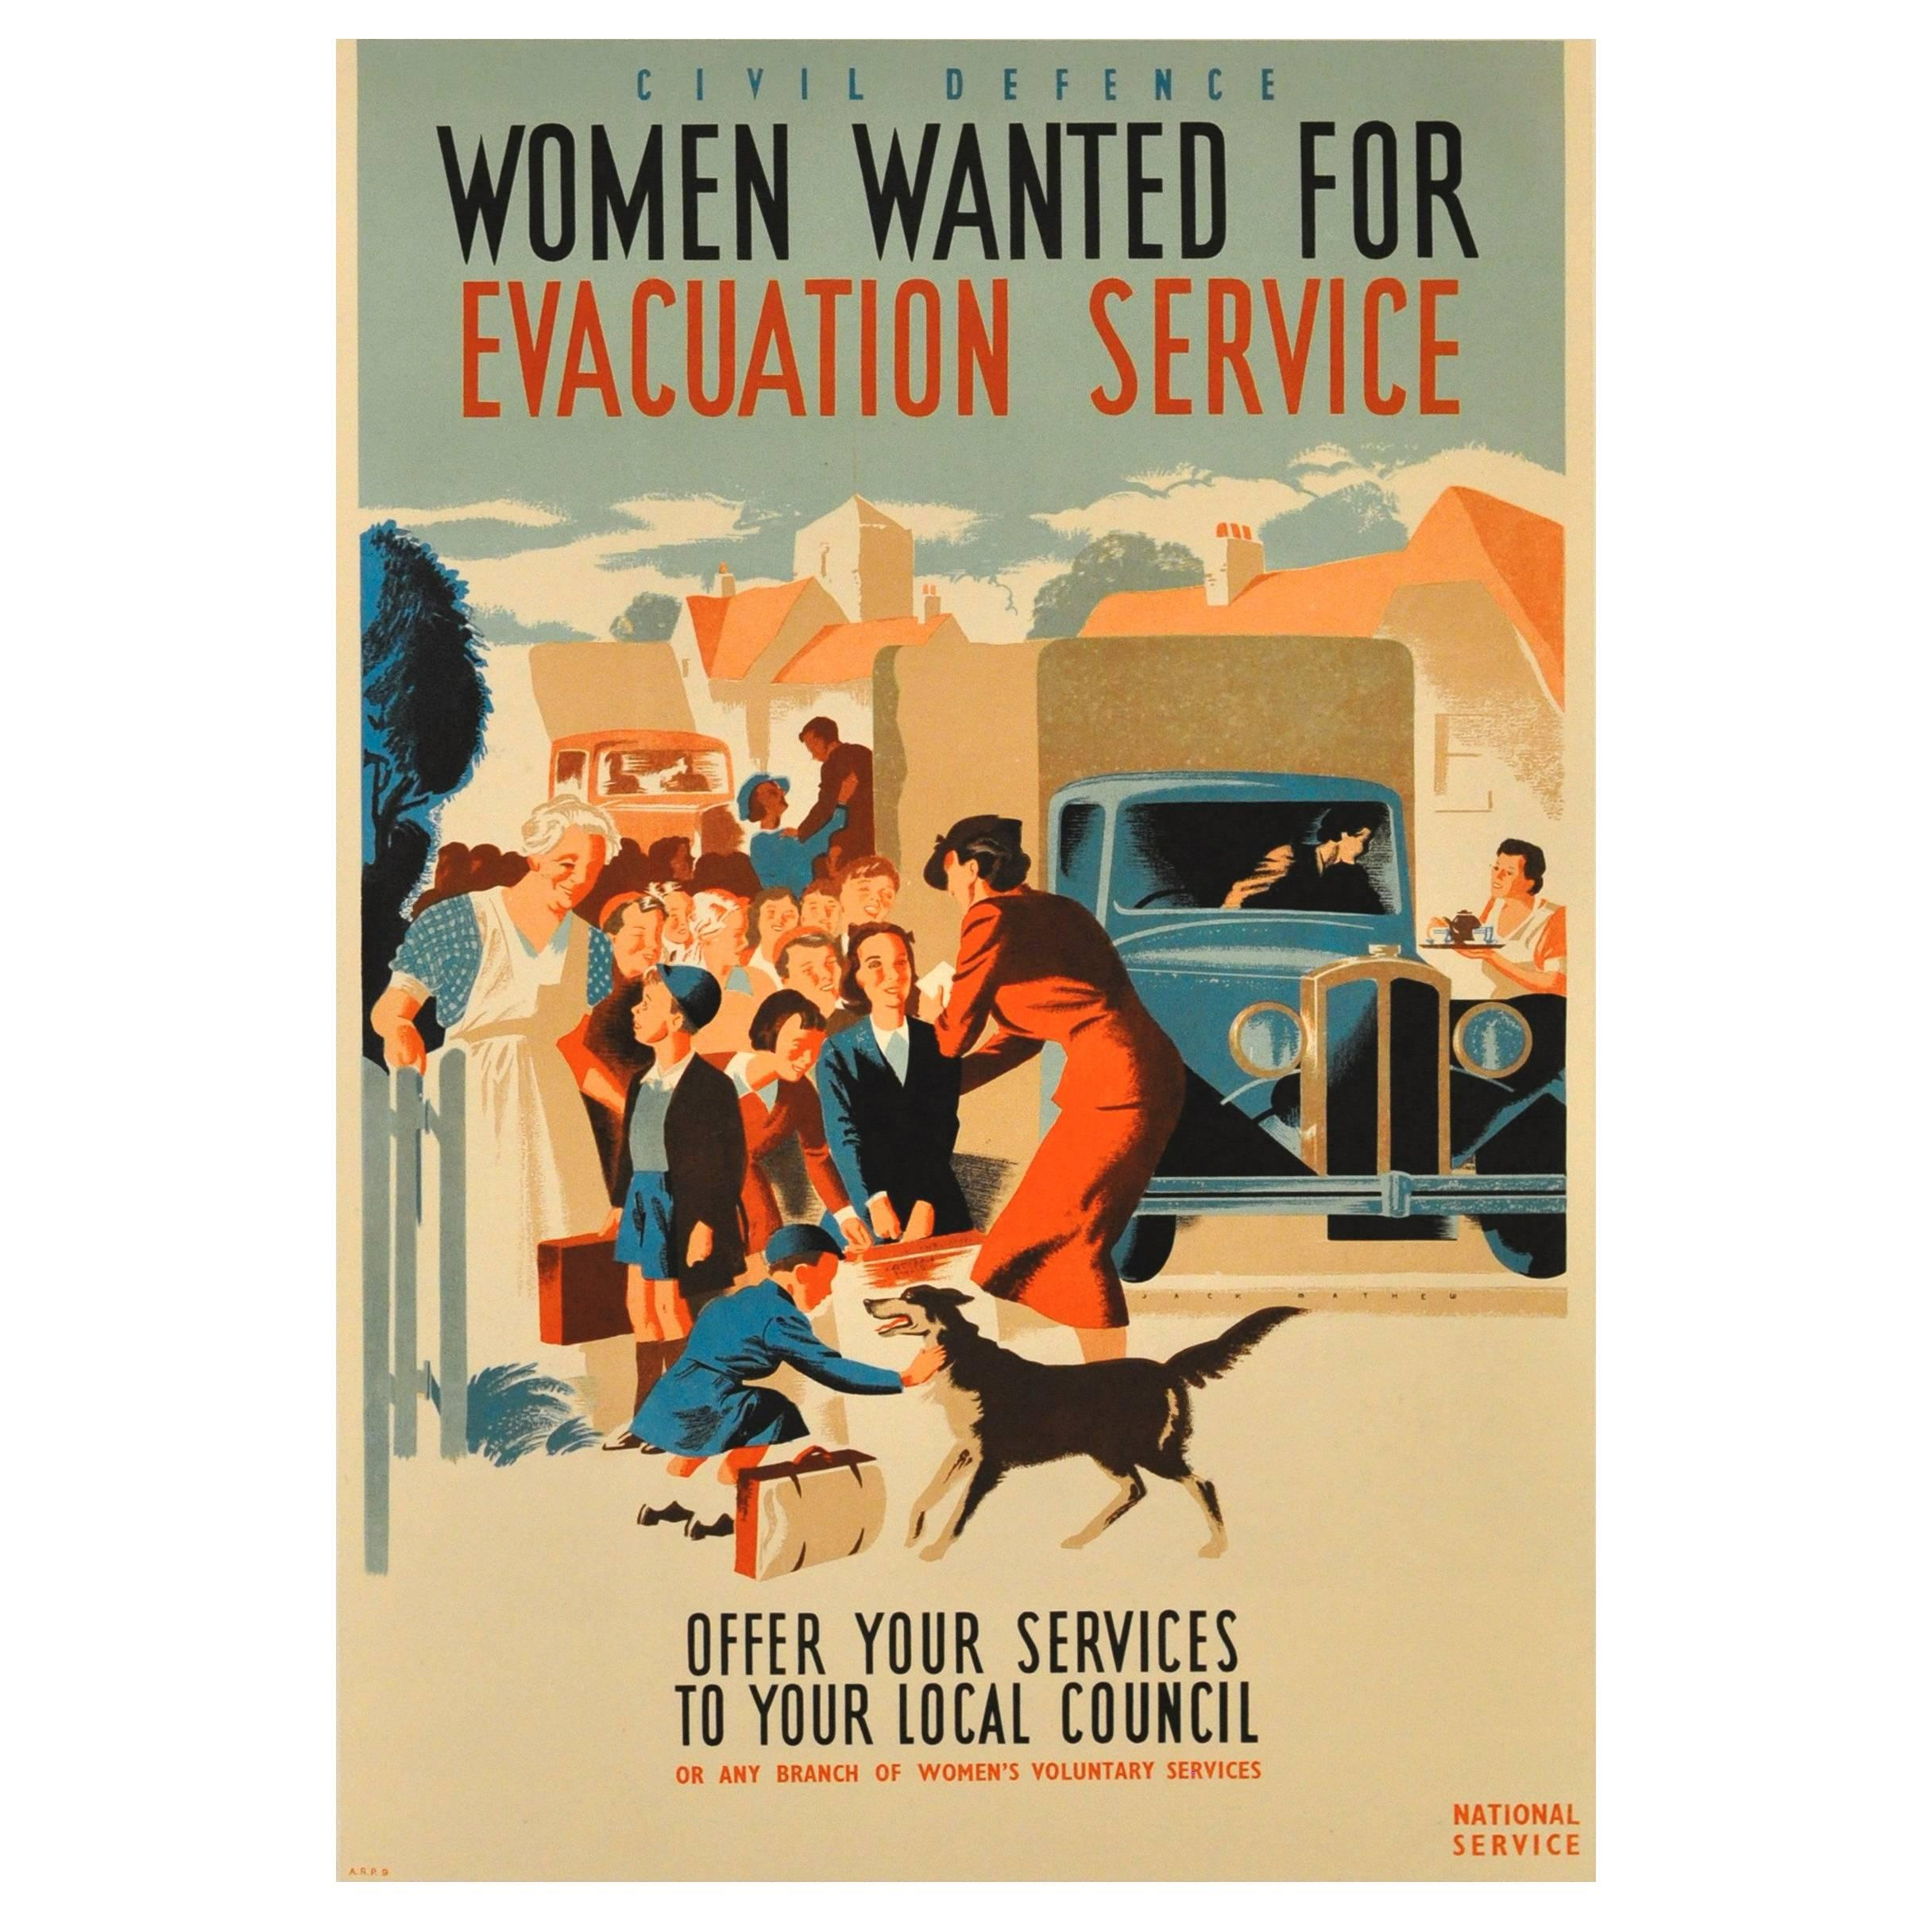 Original World War II Poster - Civil Defence Women Wanted for Evacuation Service